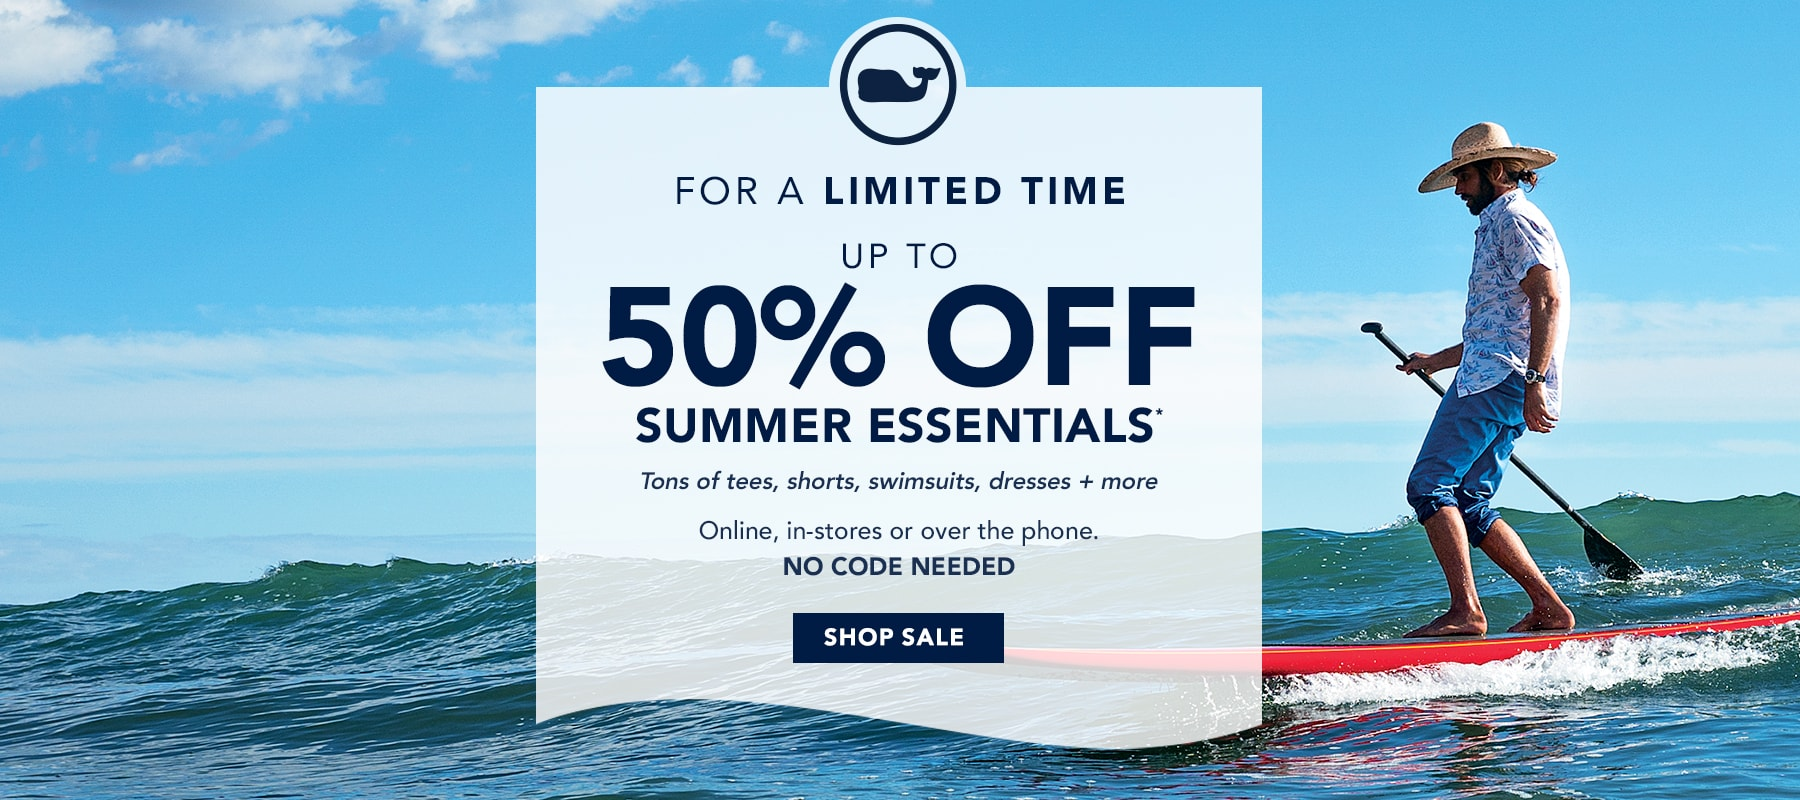 For a limited time up to 50% off Summer essentials. Shop Sale.